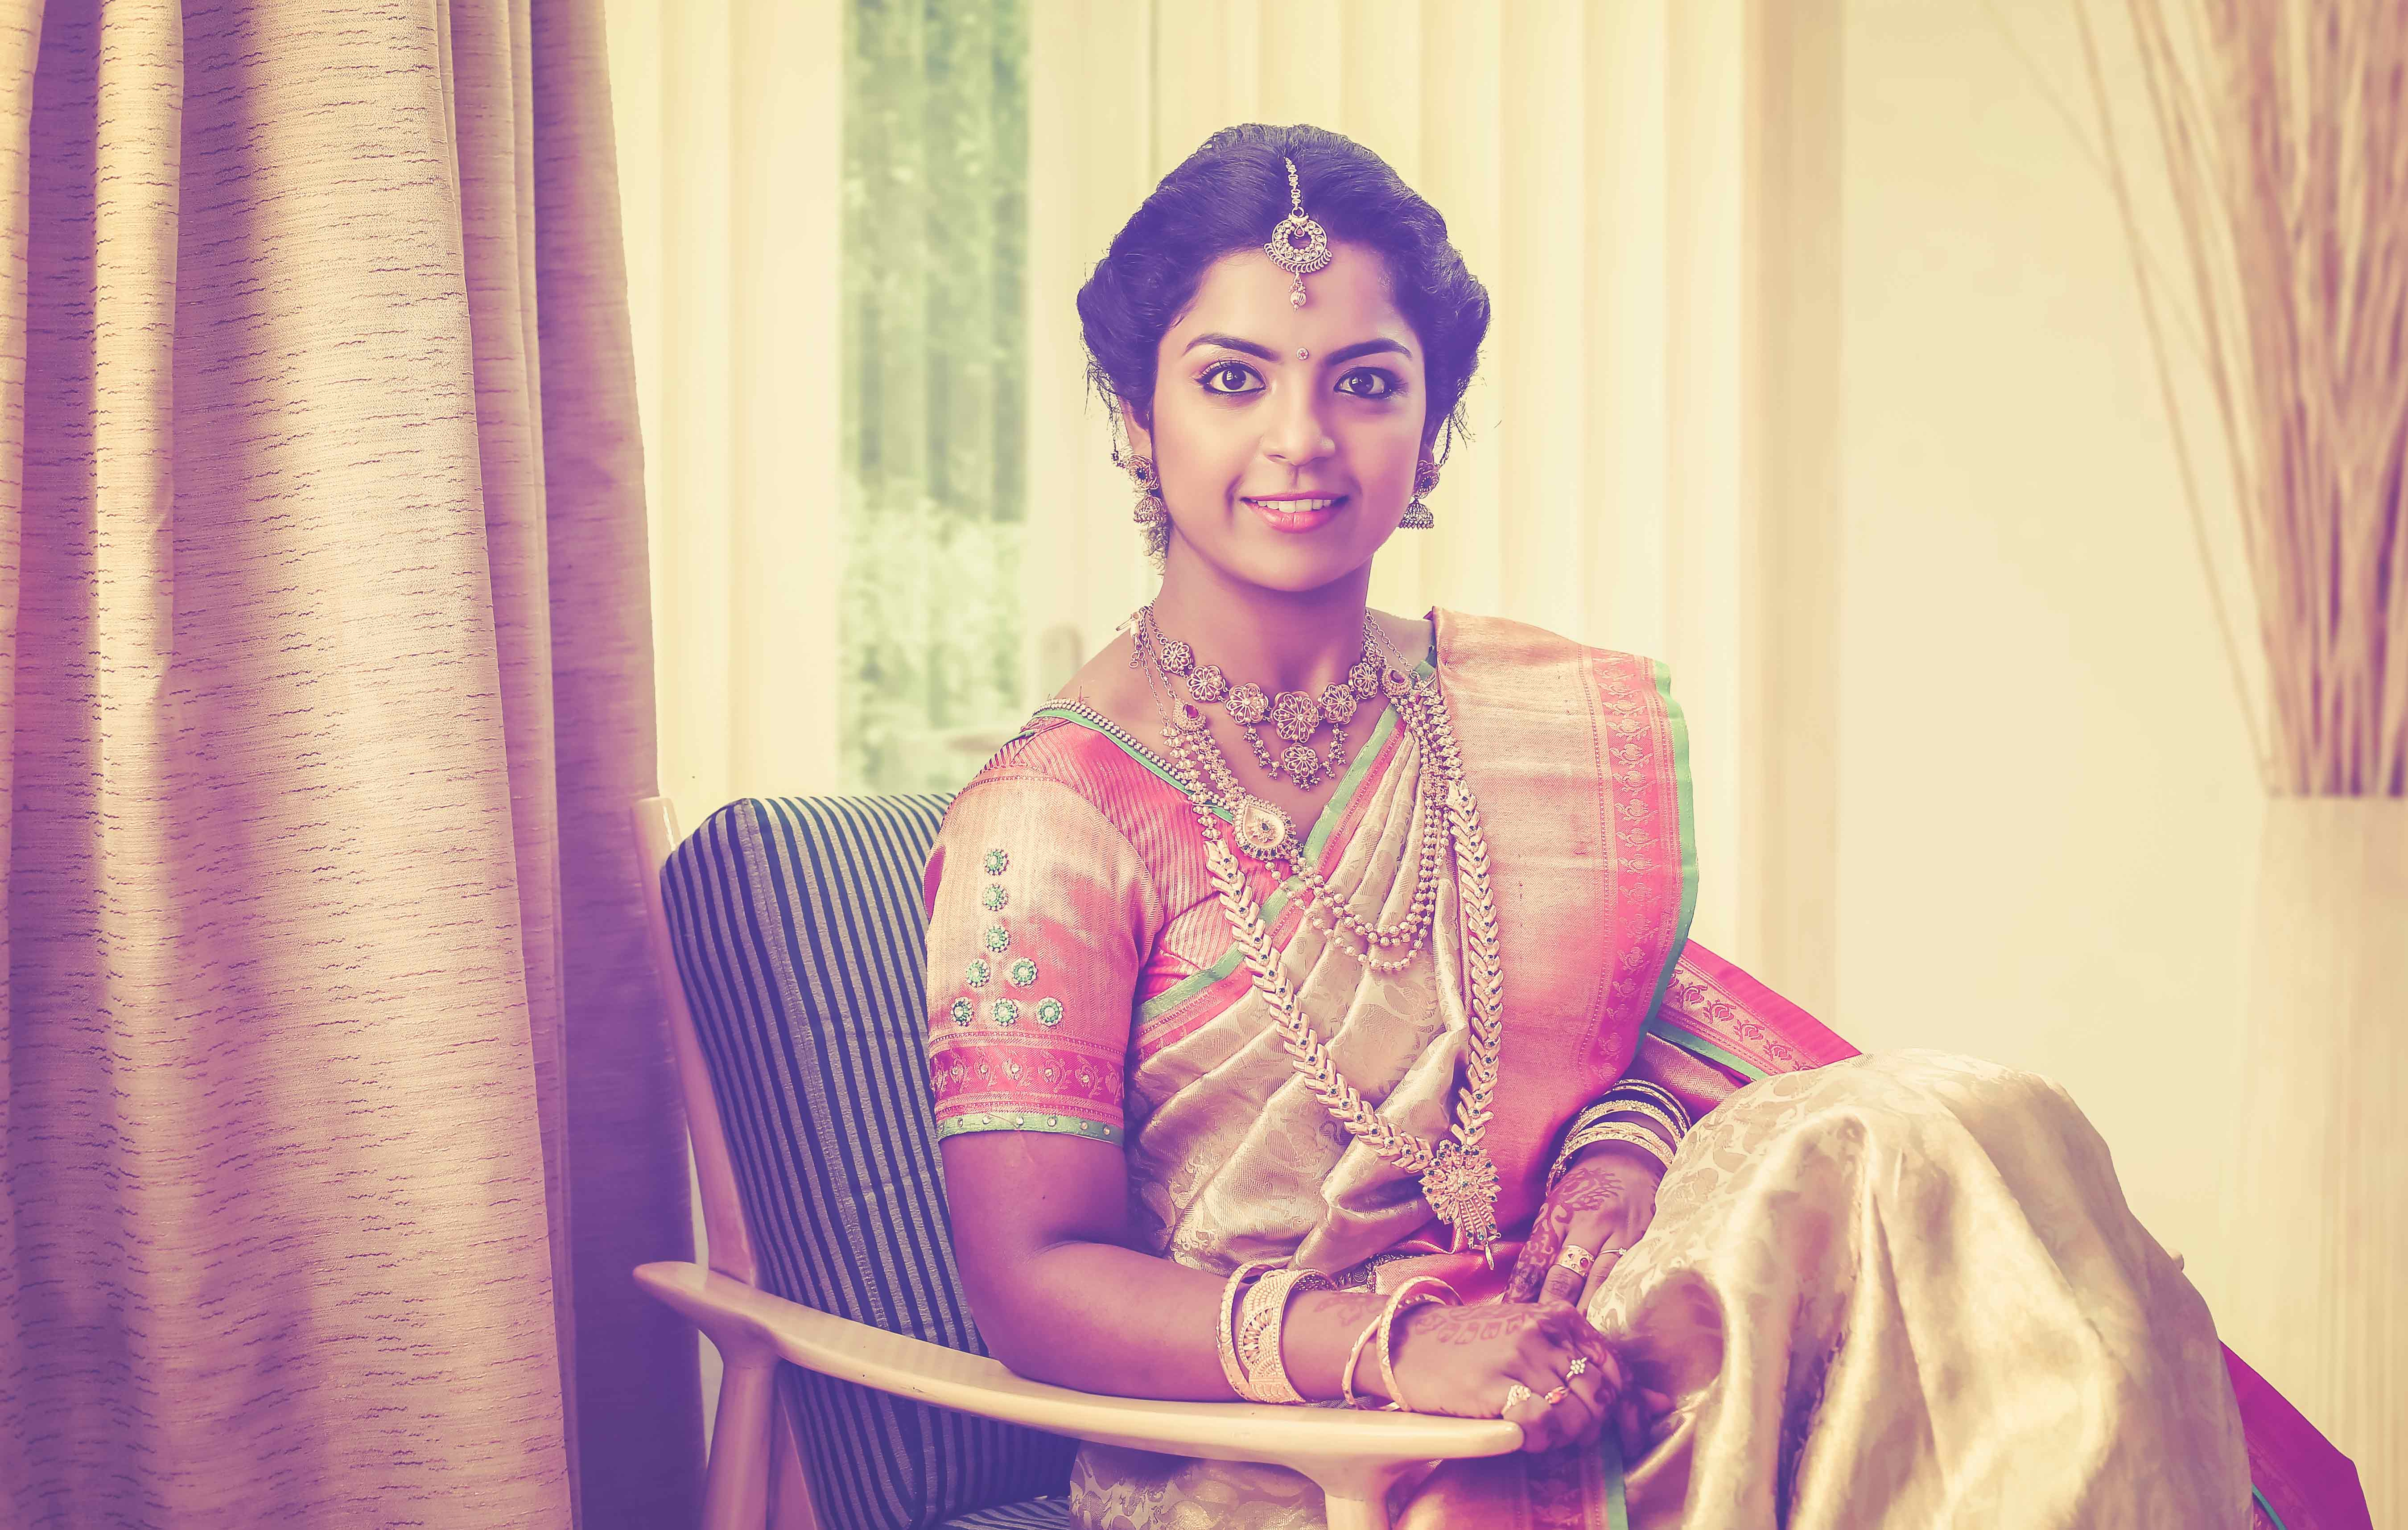 chennaiweddingdocumentaryphotography